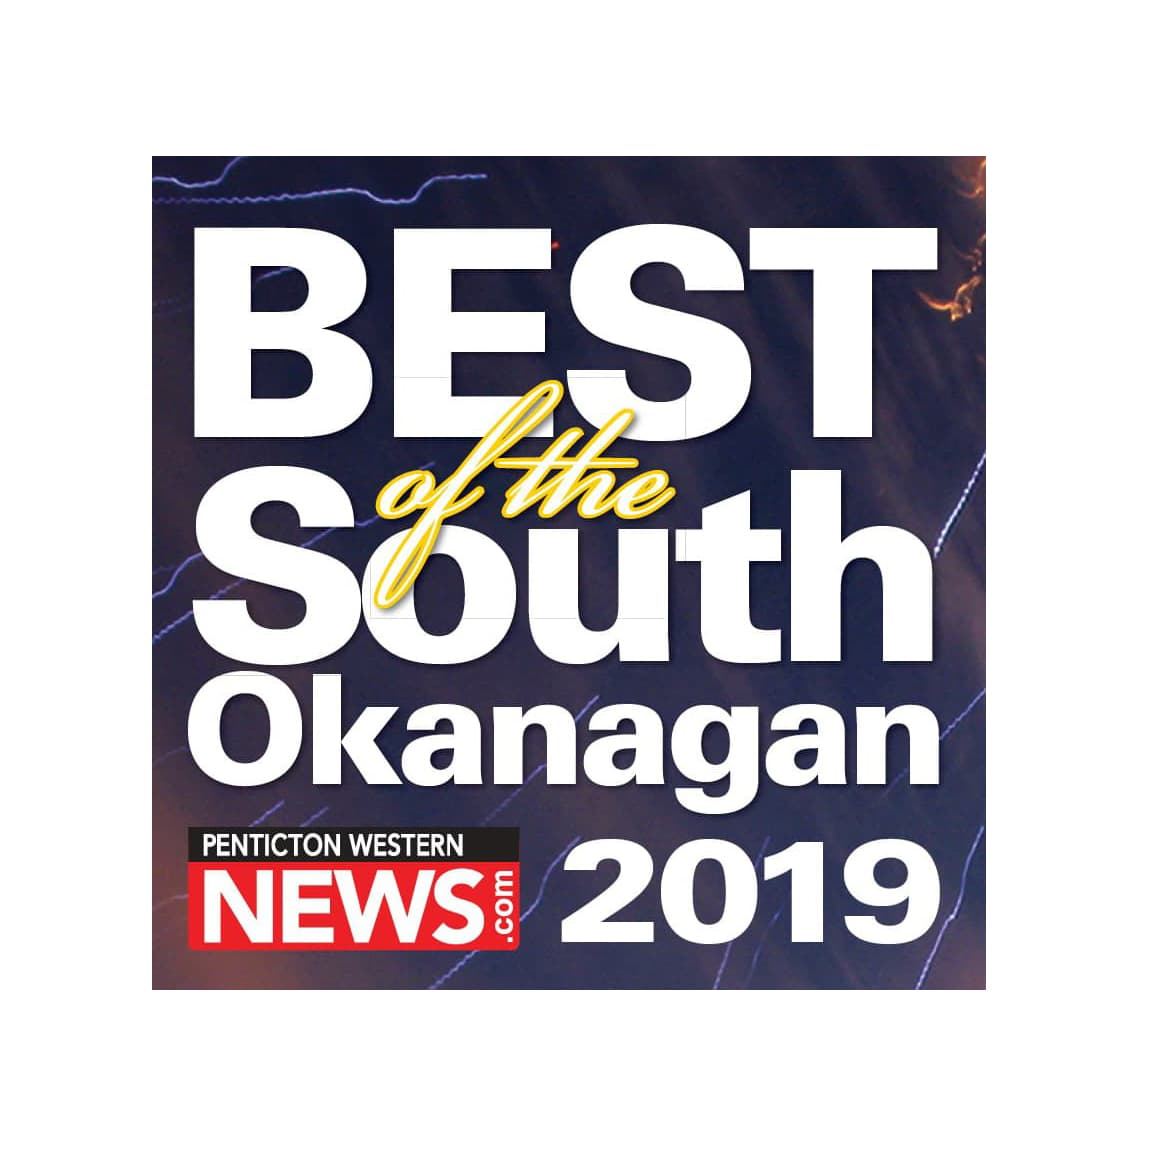 2019 Best of the South Okanagan, Penticton Western News